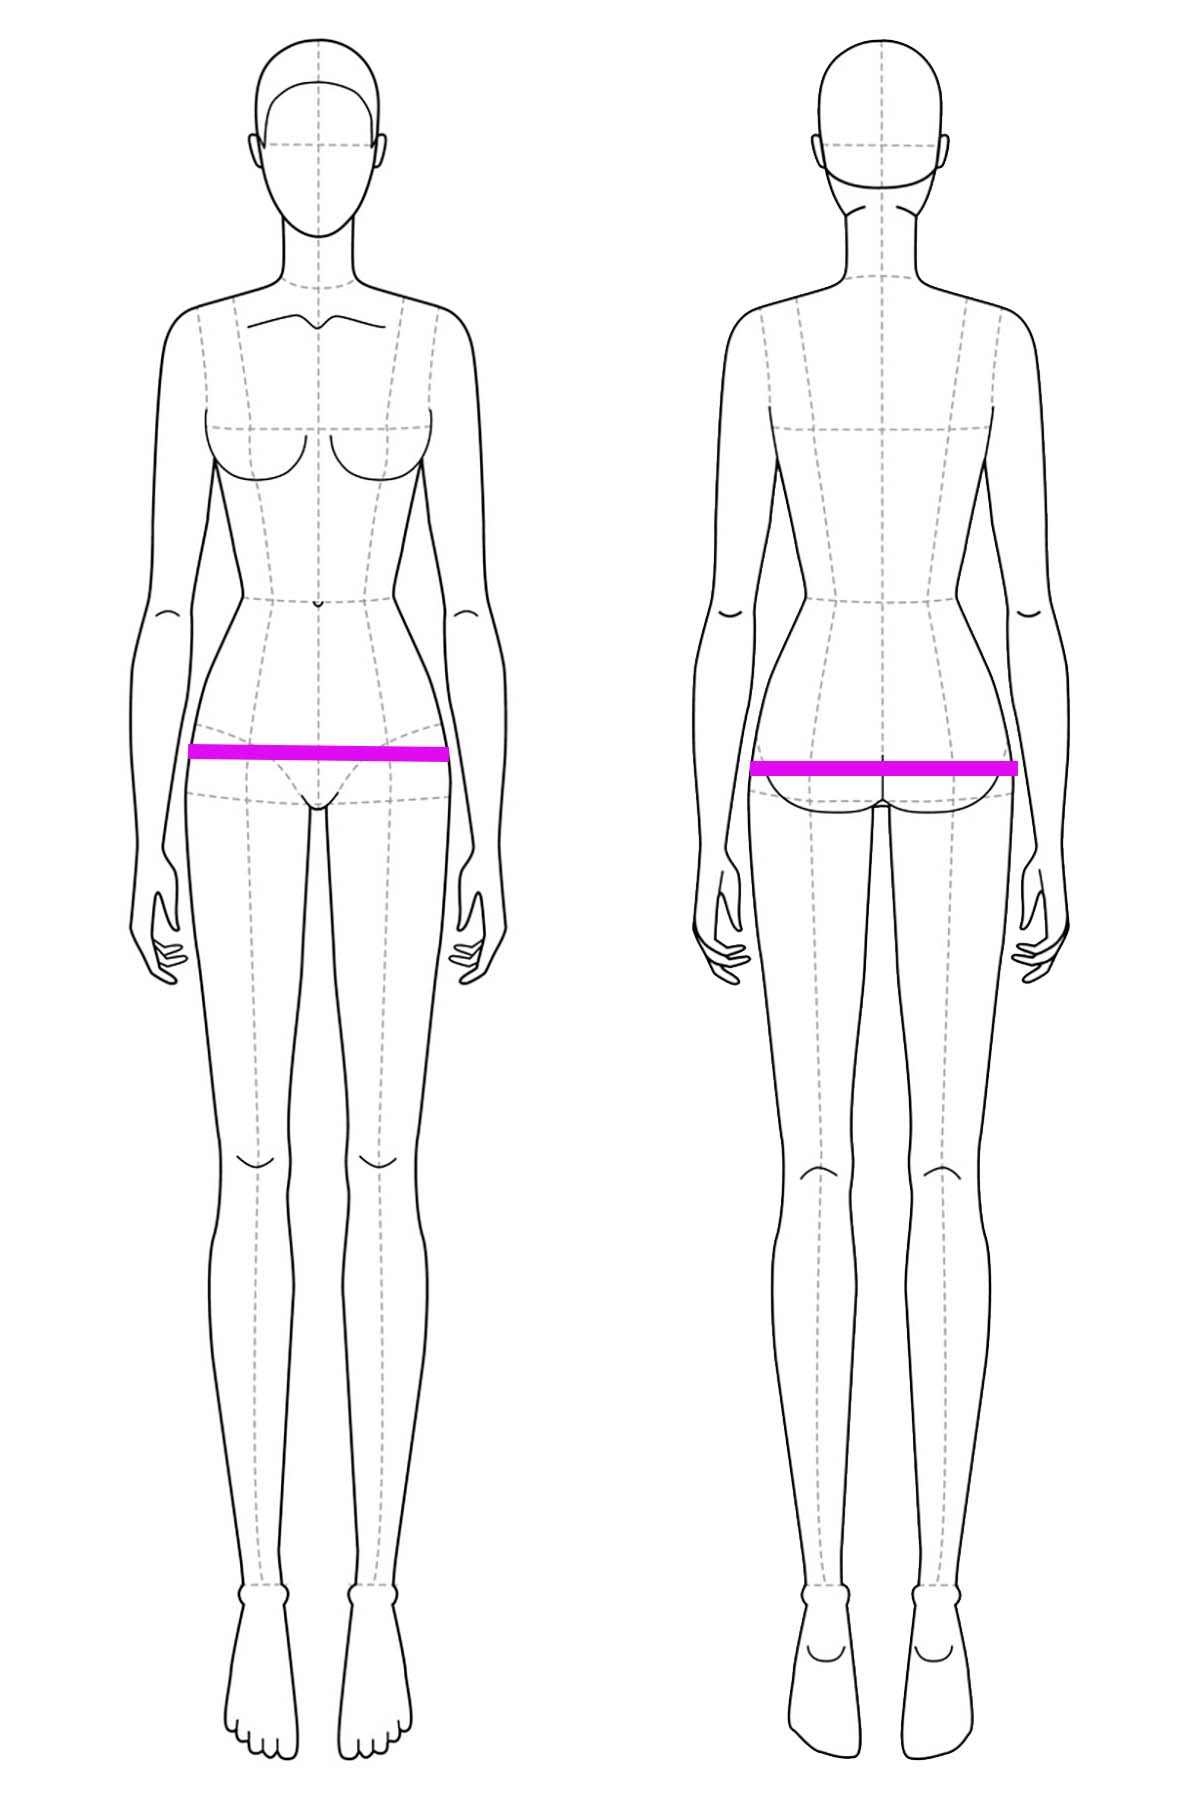 A set of line drawings of a female body, front and back views. Bright pink lines are drawn across it to indicate hip measurement placement.